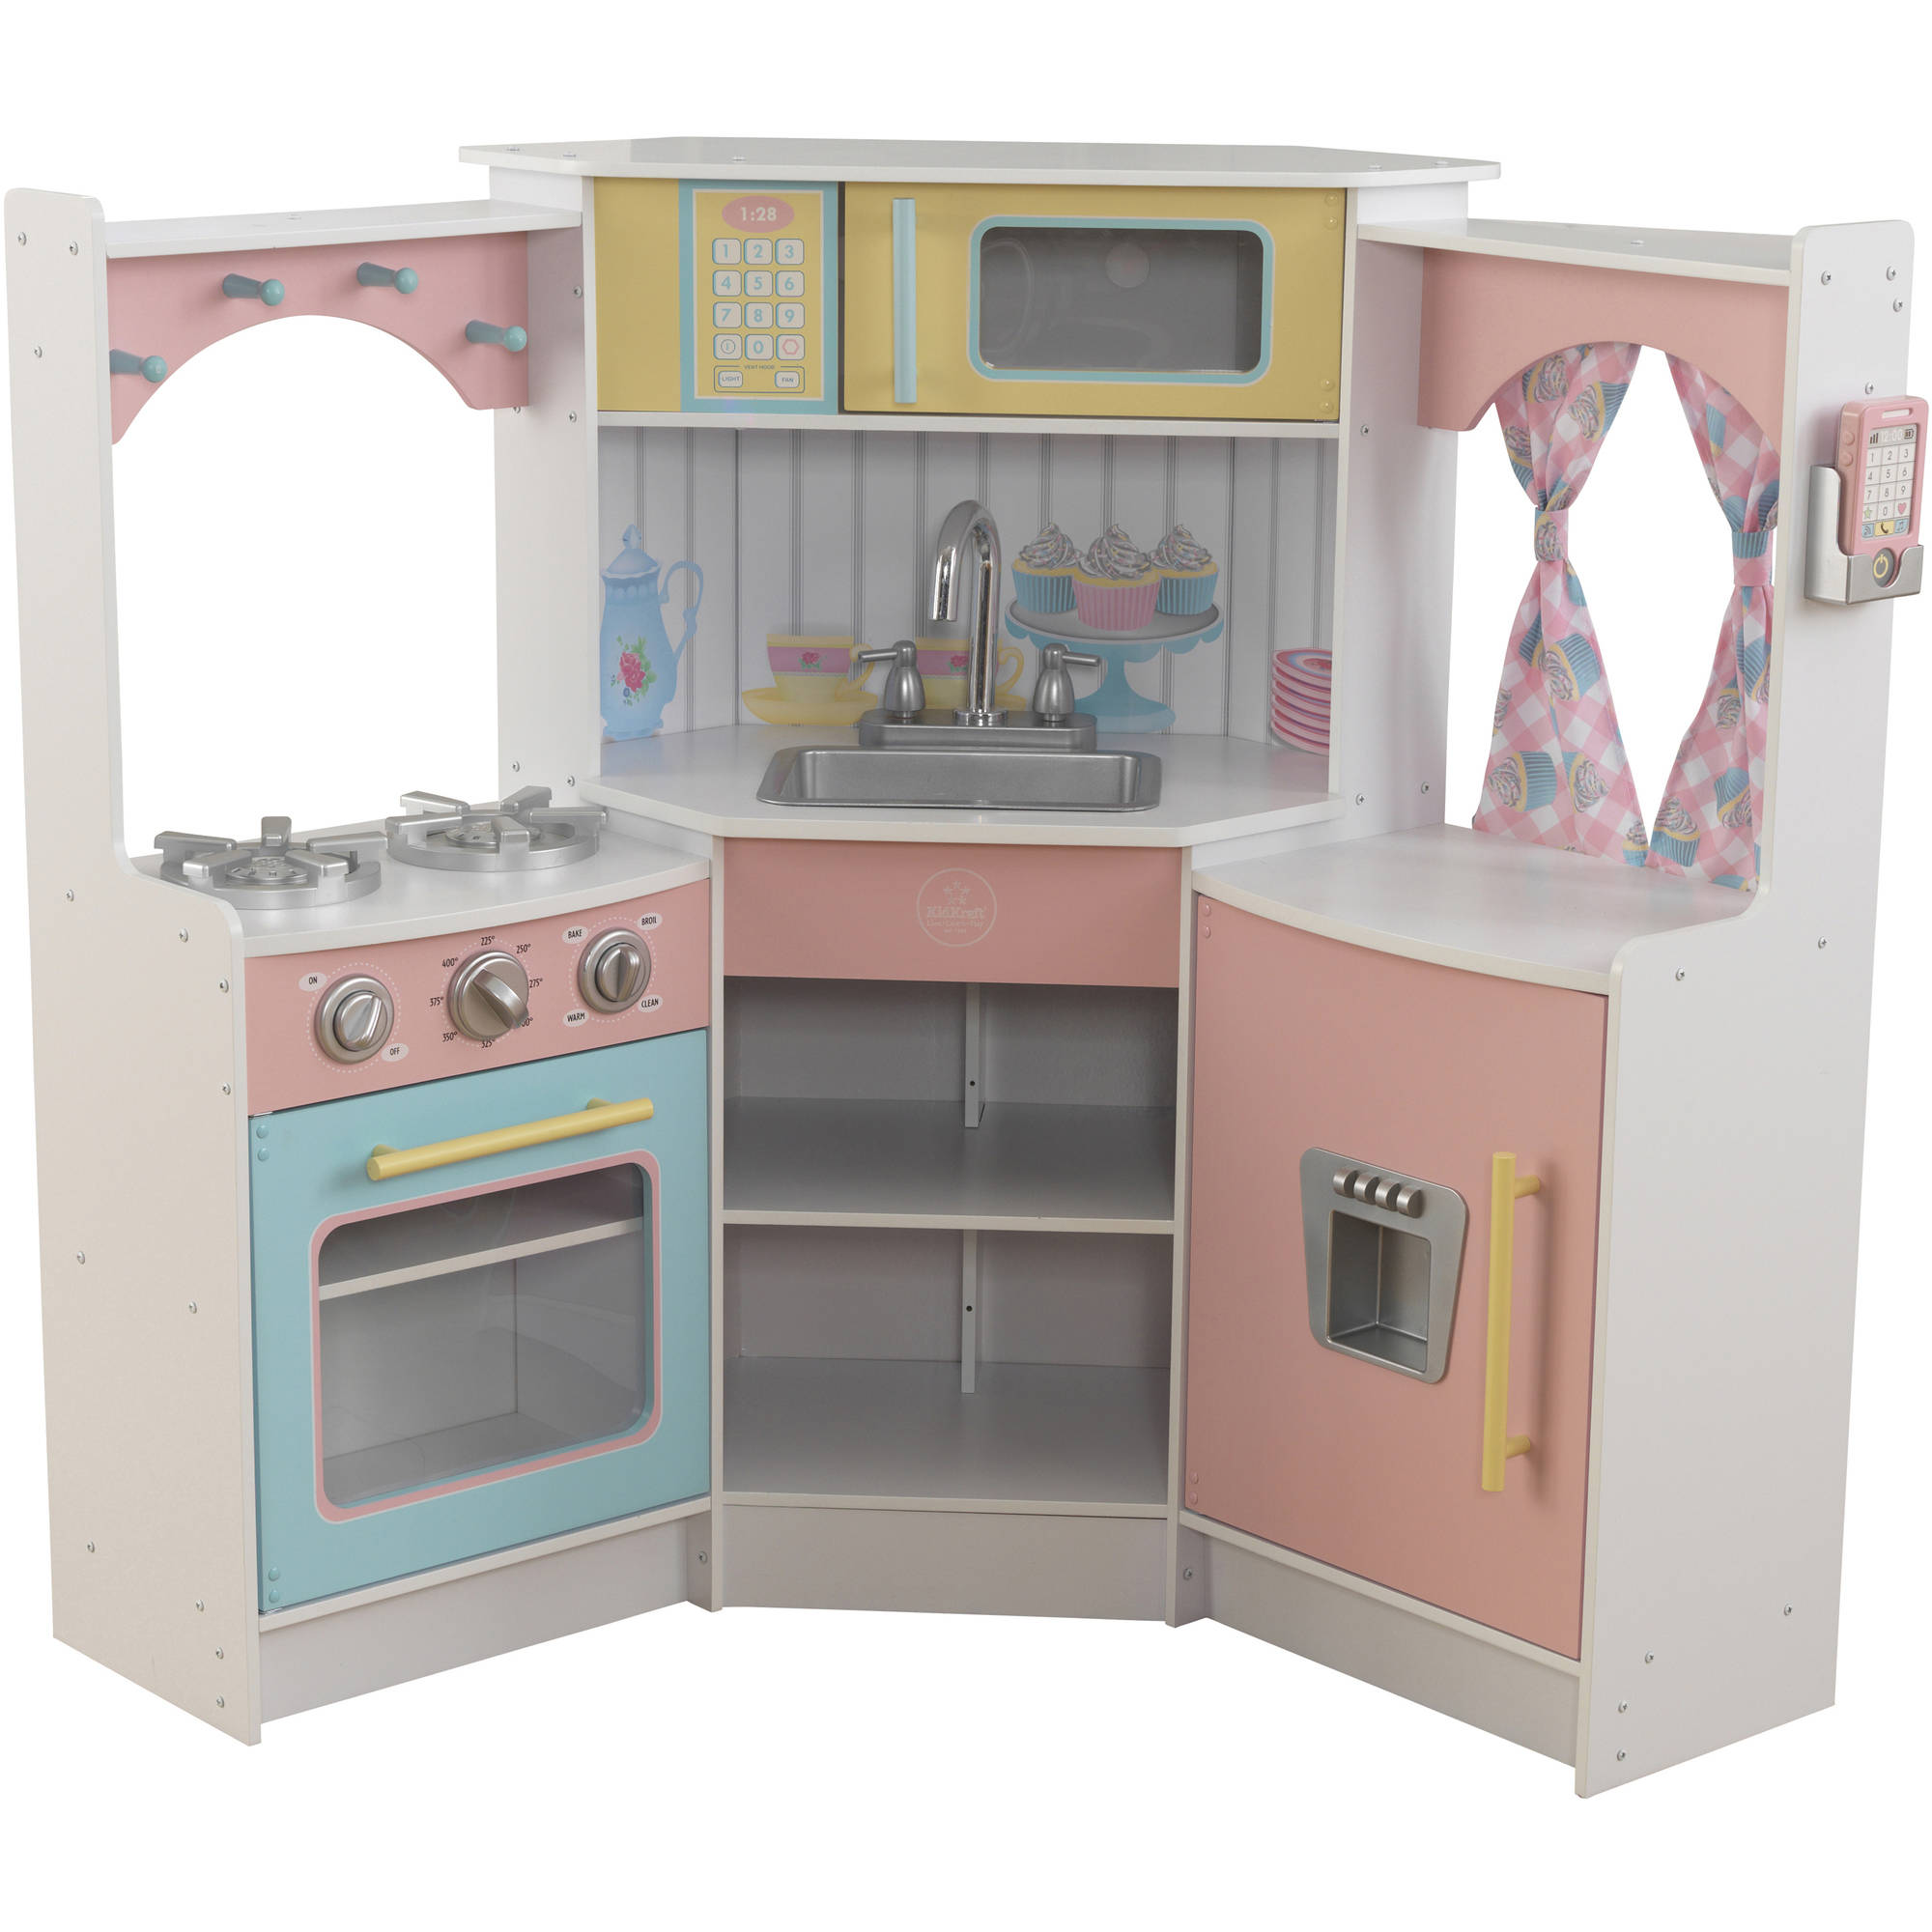 Kidkraft Kitchen White kidkraft deluxe corner play kitchen - walmart